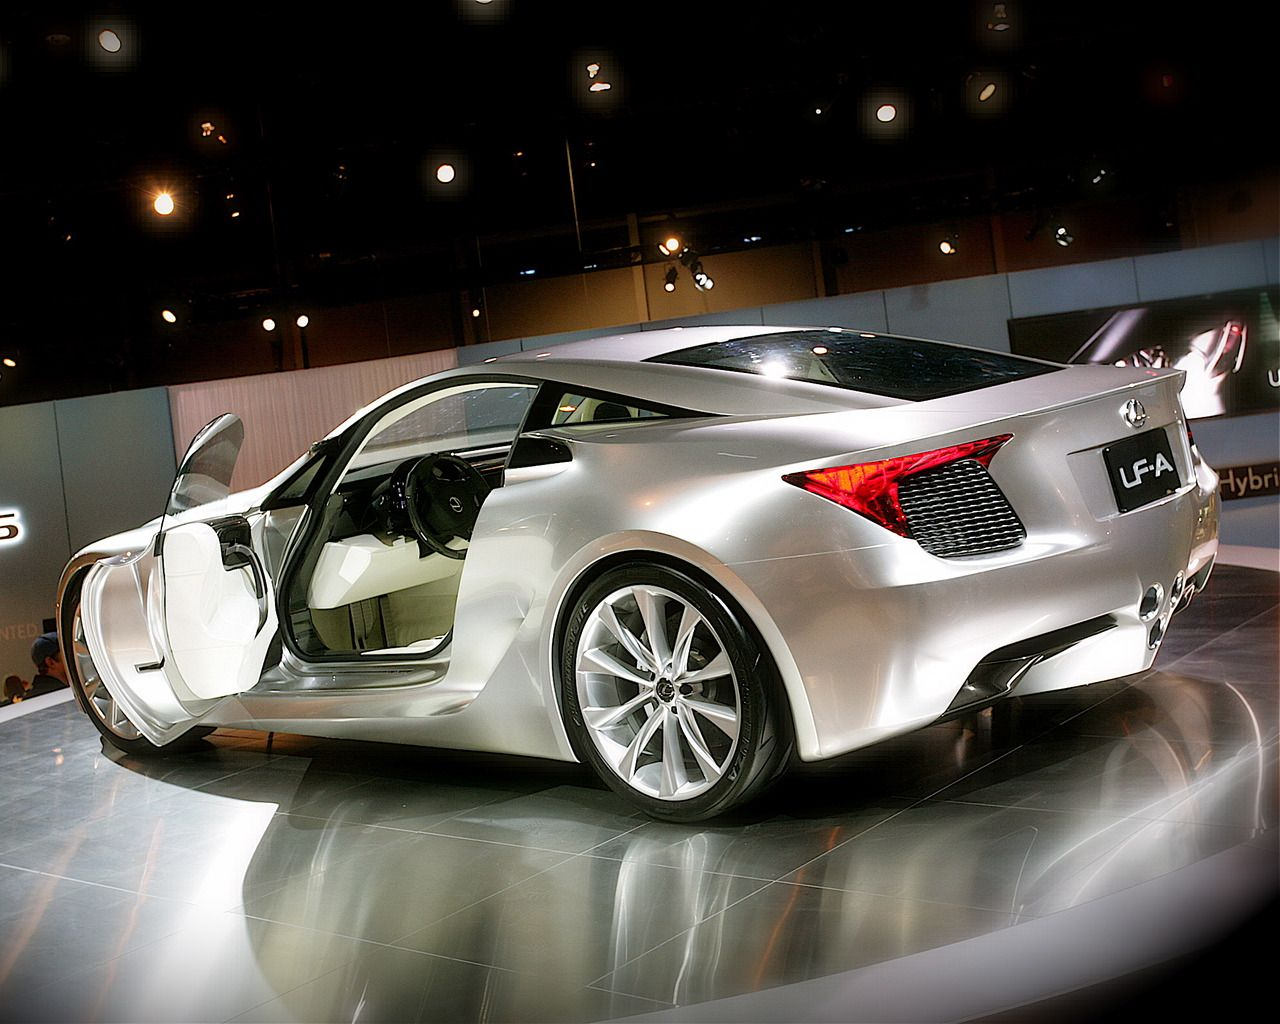 Cool Lexus Cars How About This Luxury Car Like It Have A Look At - Look at cool cars